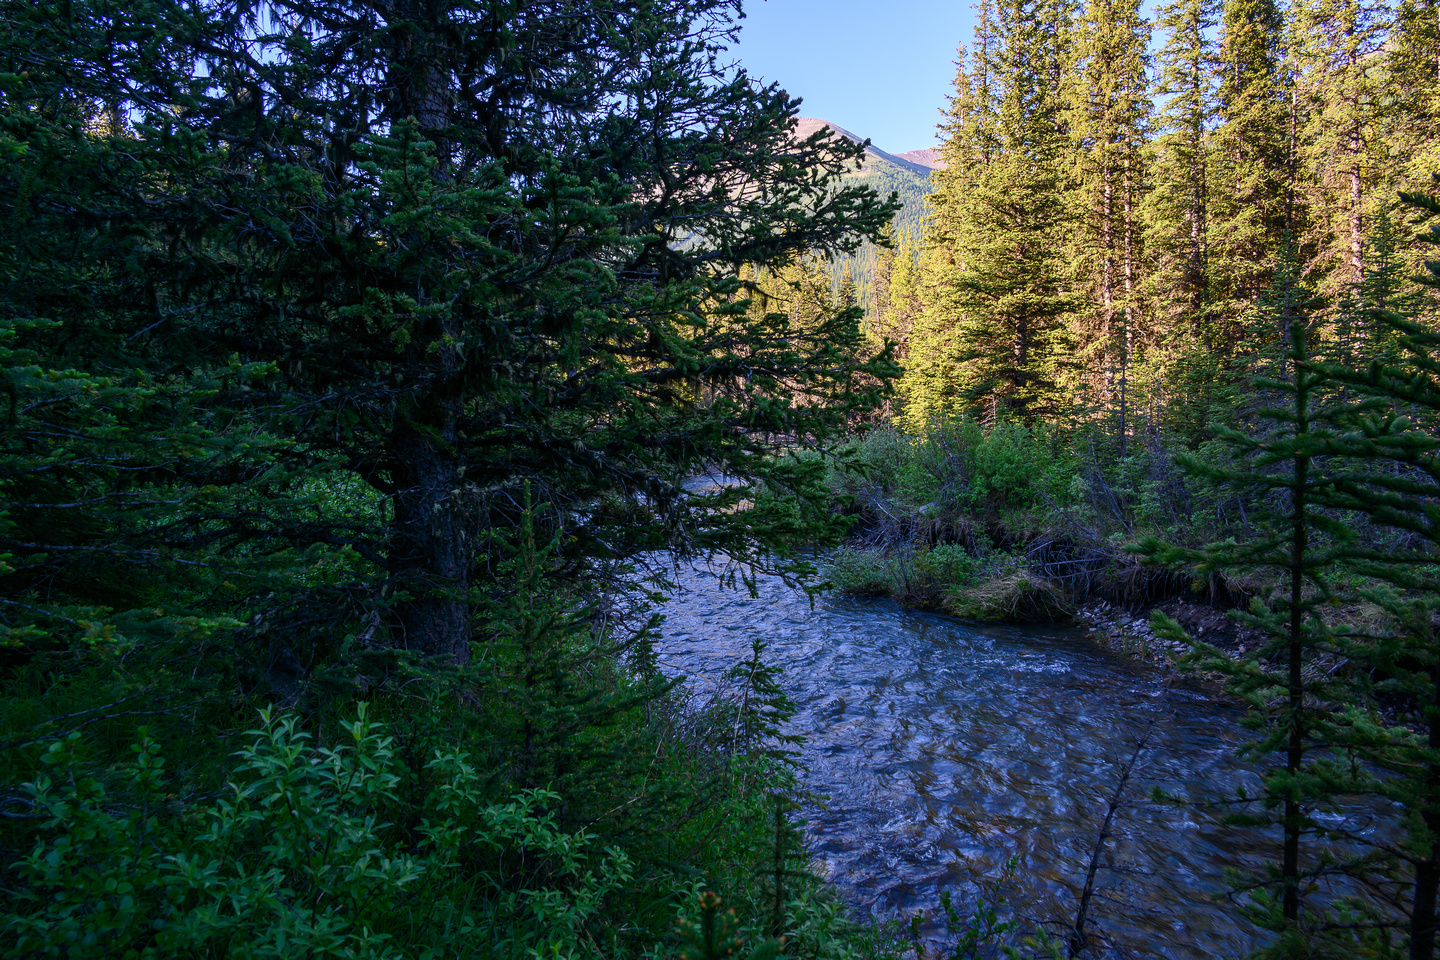 Yup! Here's where I finally dumped the bike along the Sheep River and gave up after ~11km approach.